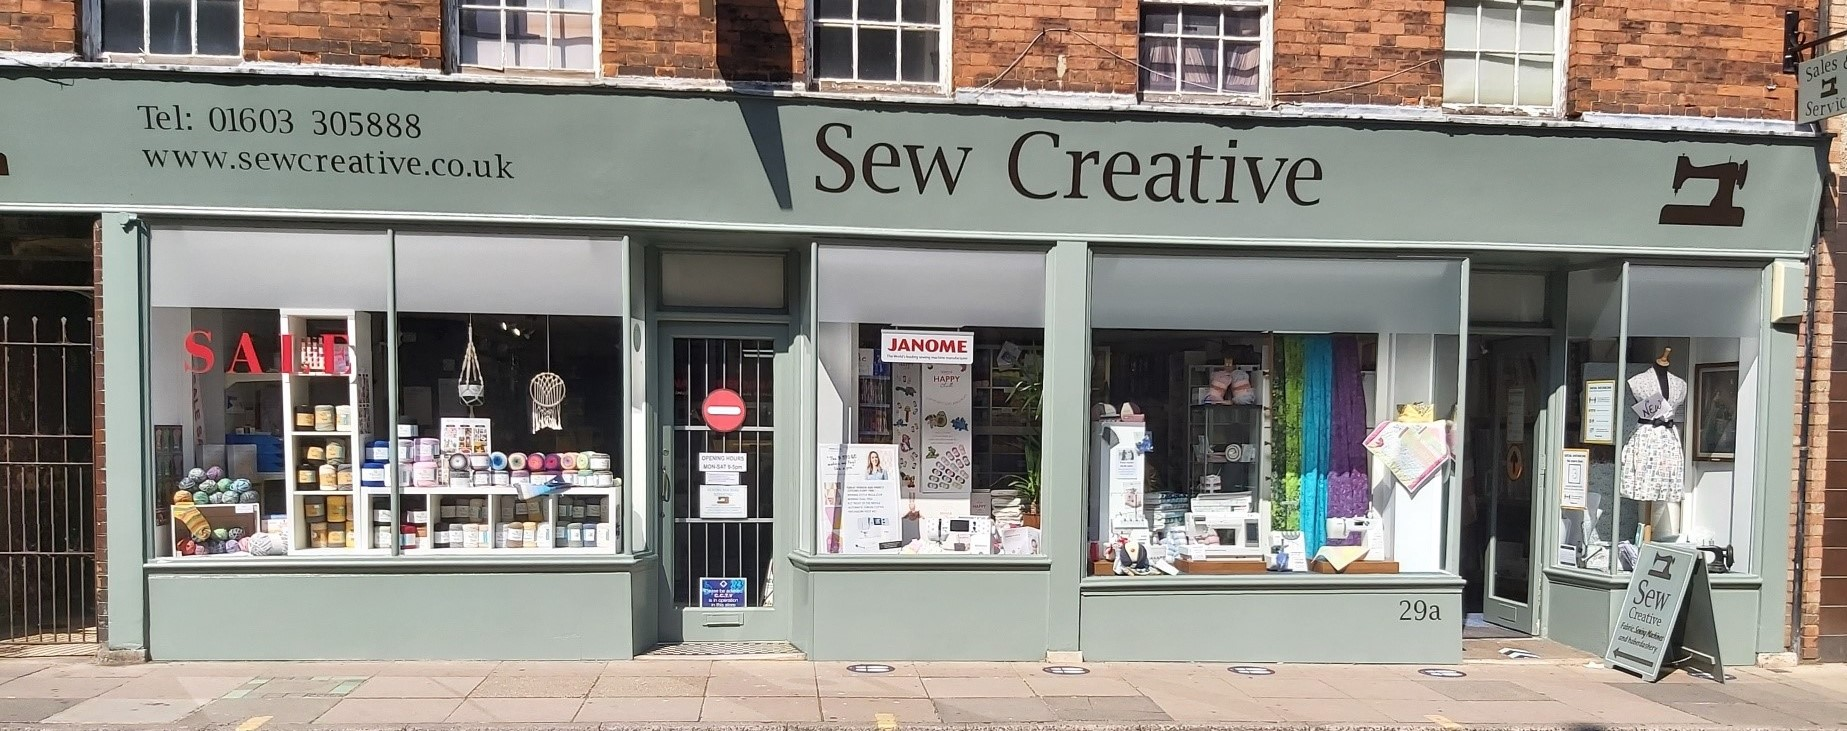 sew-creative-the-sewing-centre-ltd-exterior-view